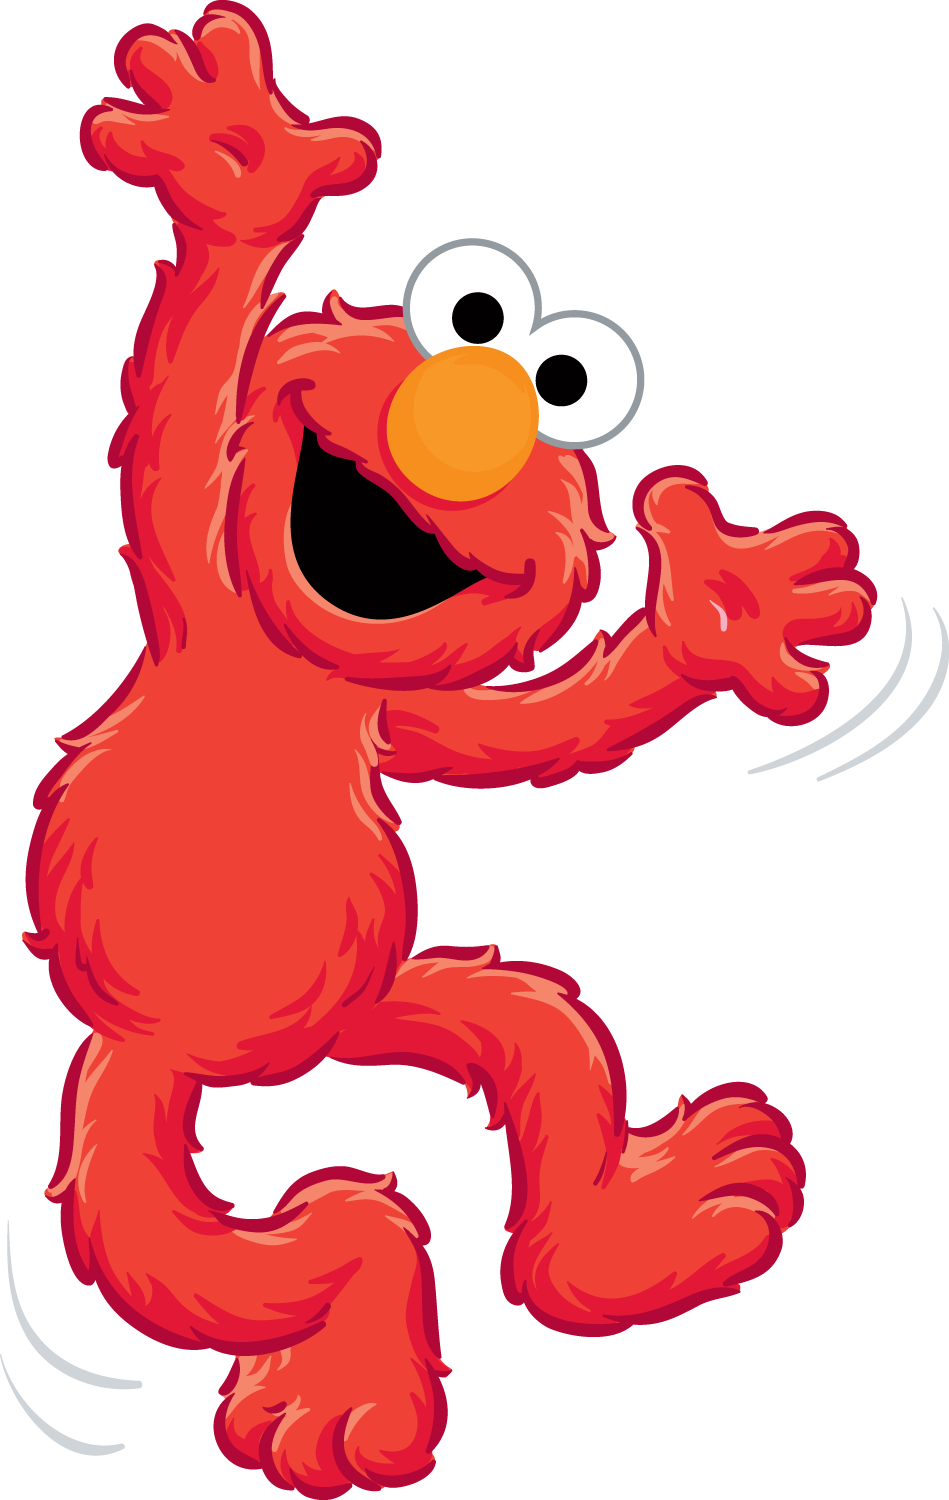 images elmo free. Clipart definition illustration